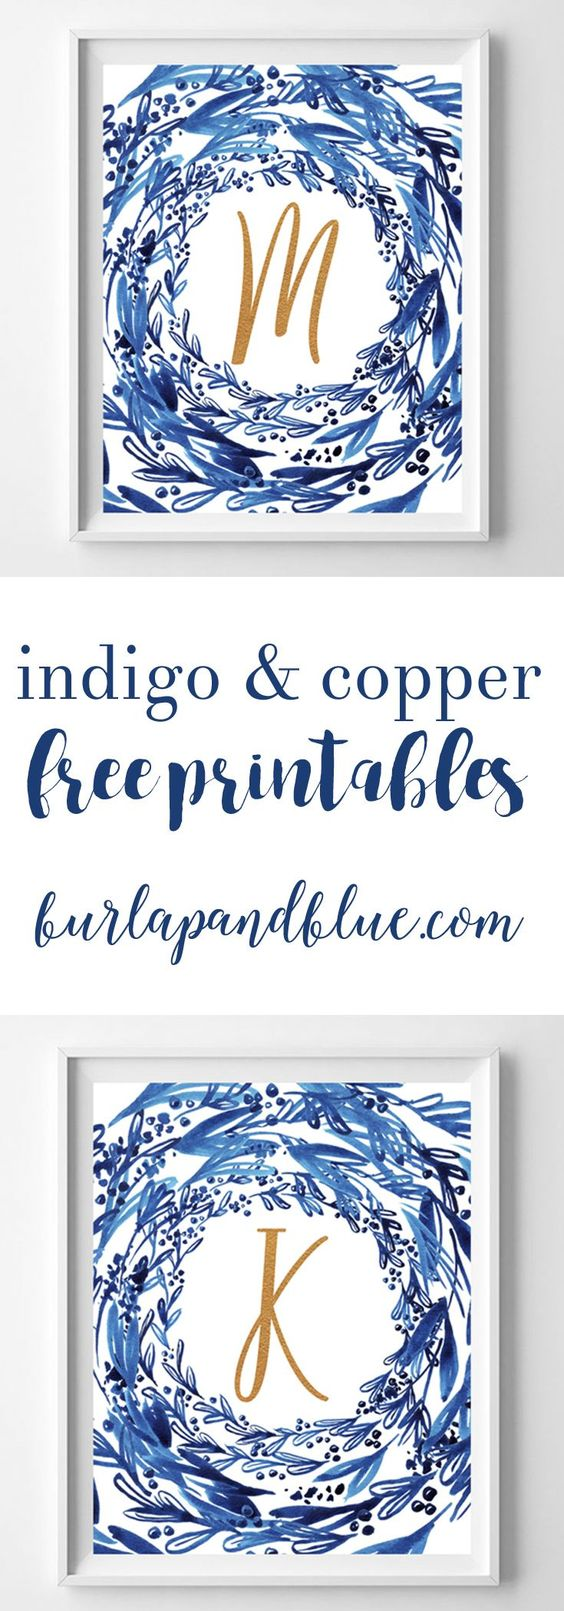 Free watercolor printable initials in indigo and copper. These free printables are the perfect wall art idea or gift!: